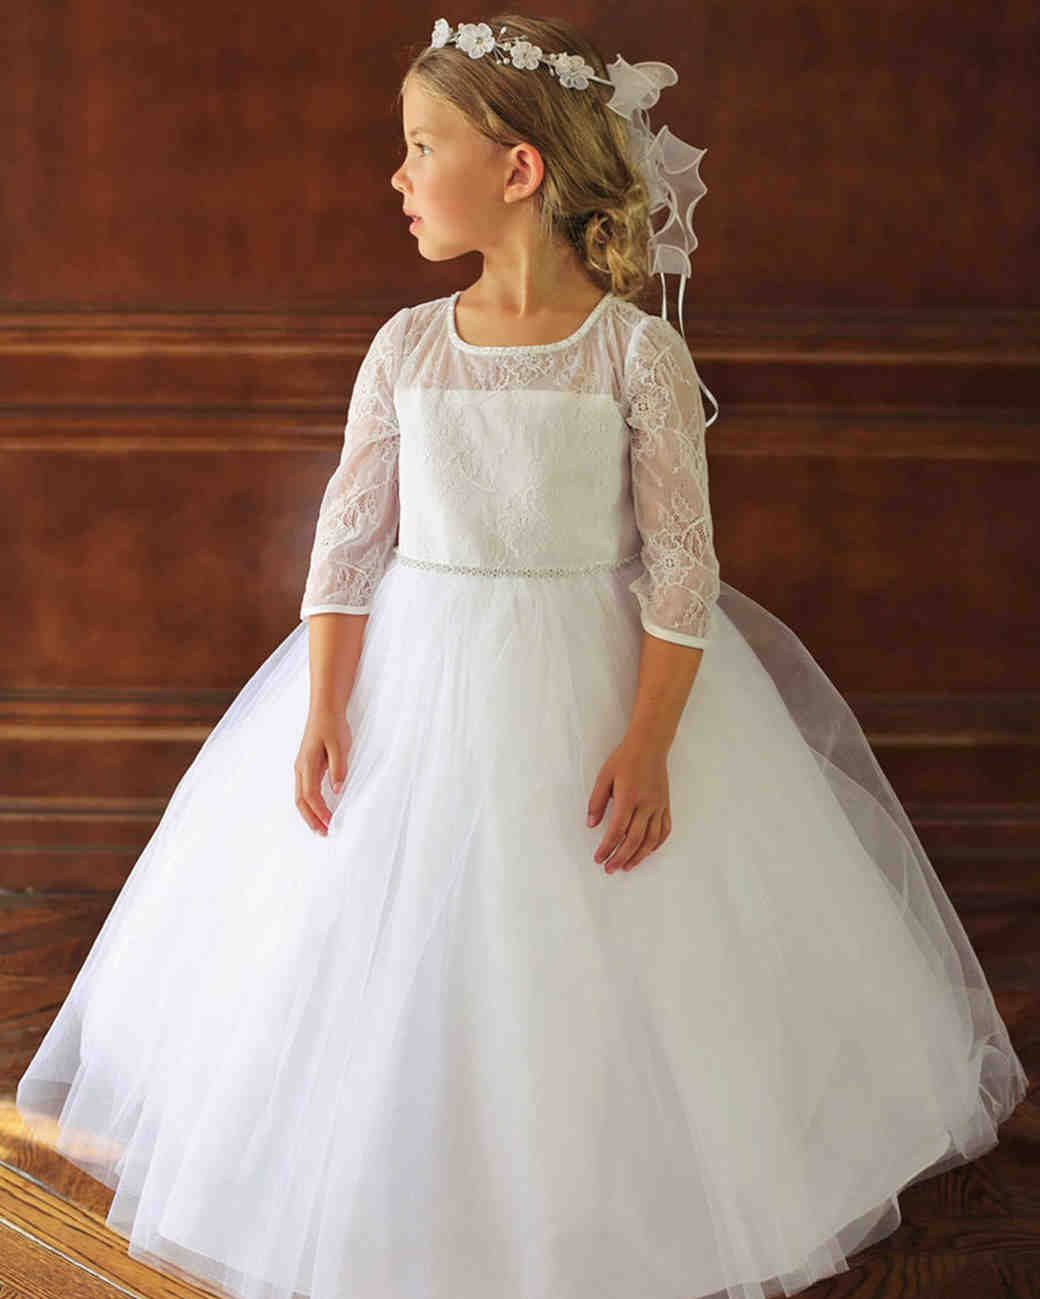 The sweetest long sleeve dresses for flower girls martha stewart the sweetest long sleeve dresses for flower girls martha stewart weddings mightylinksfo